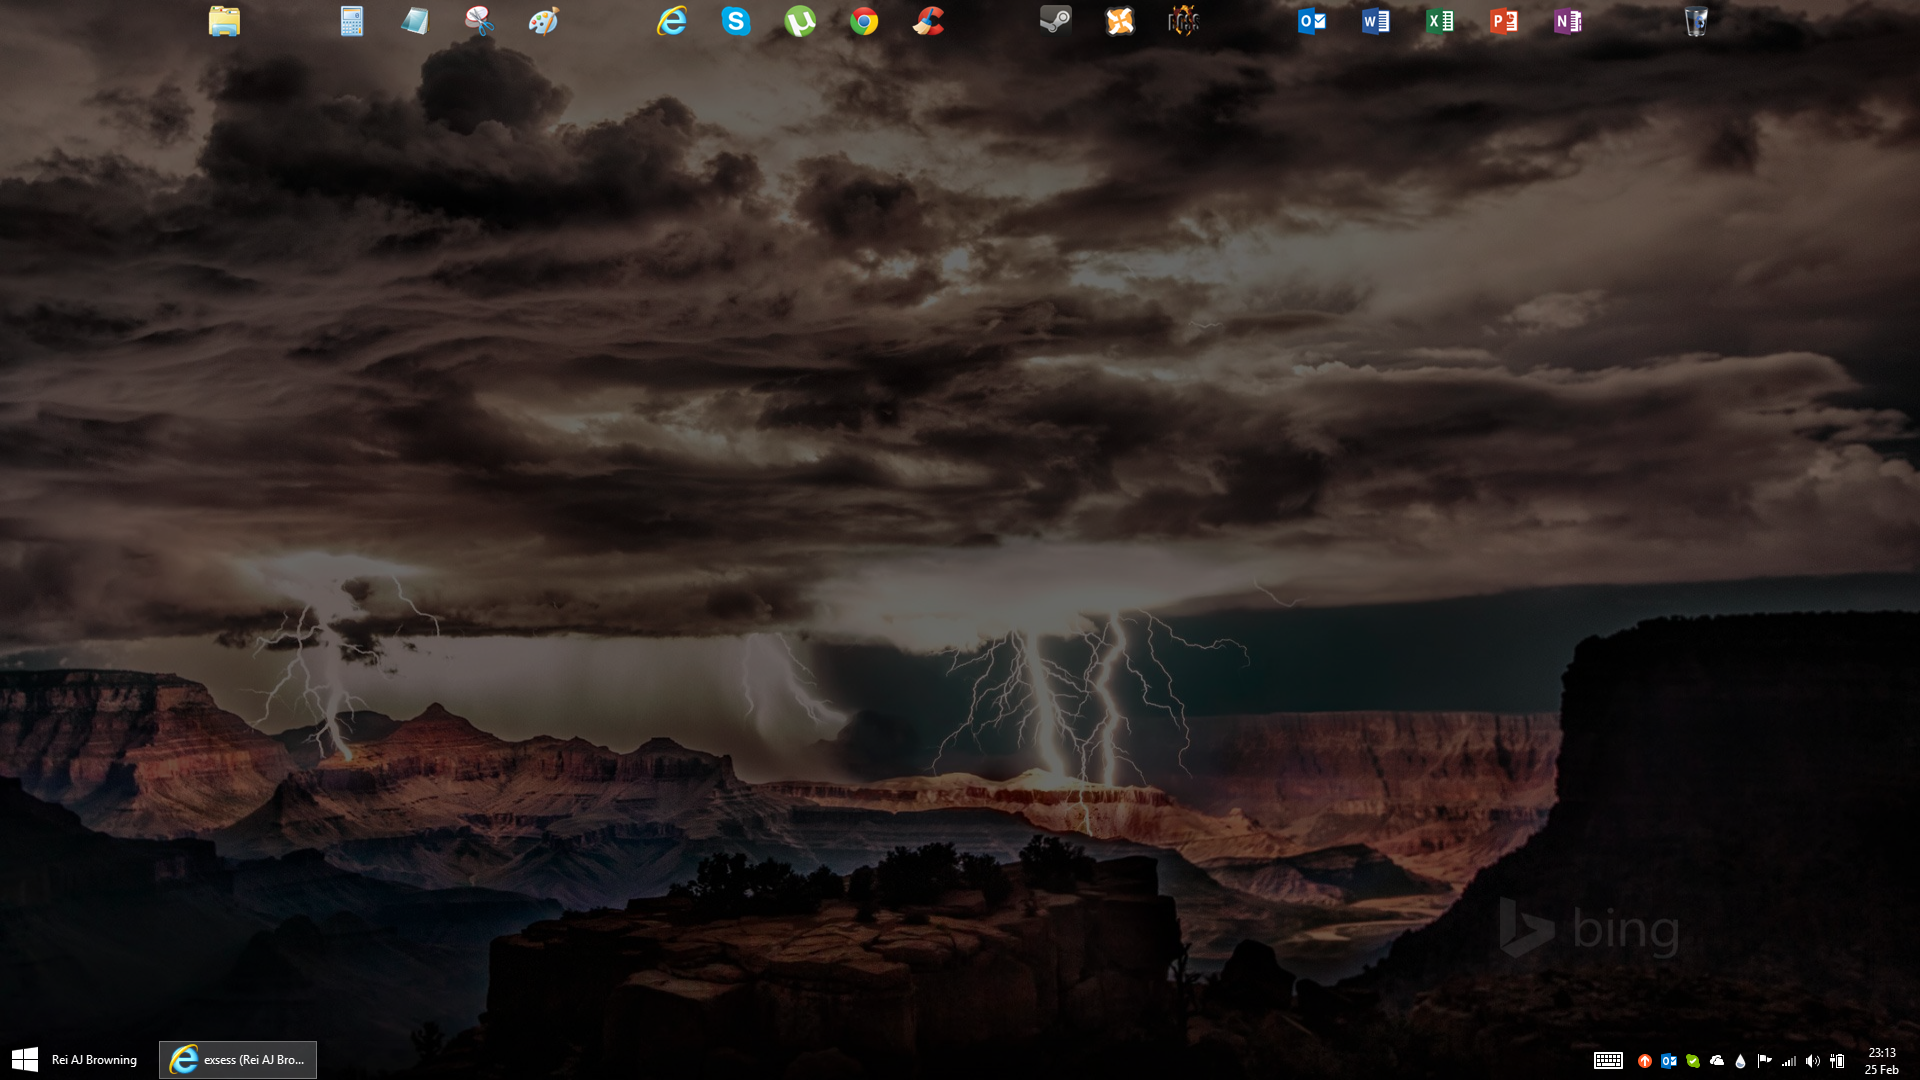 My Windows 8.1 Desktop by exsess